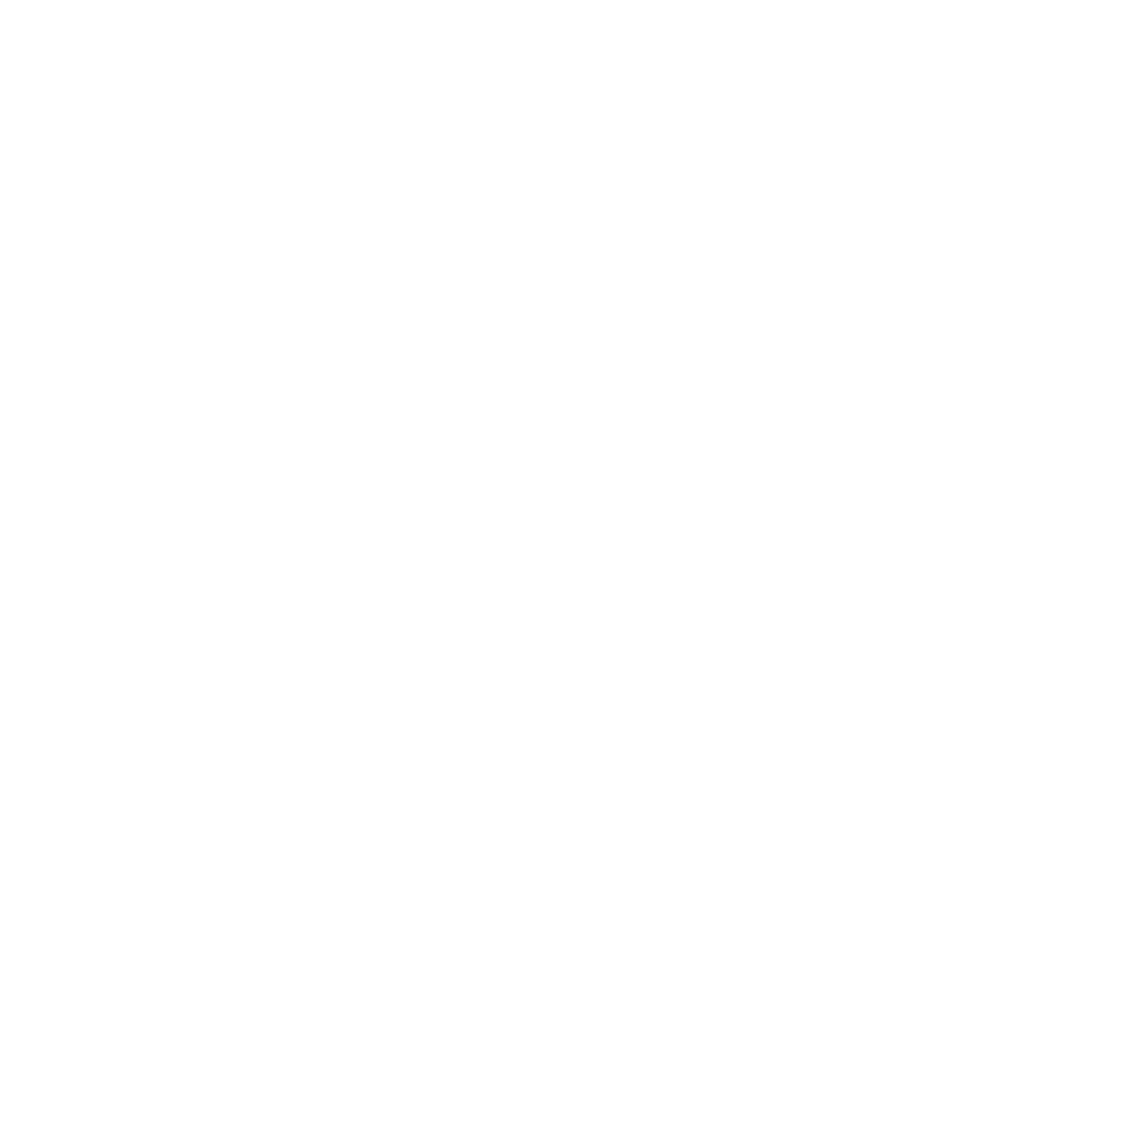 The Virginia Gentlemen, Est. 1953